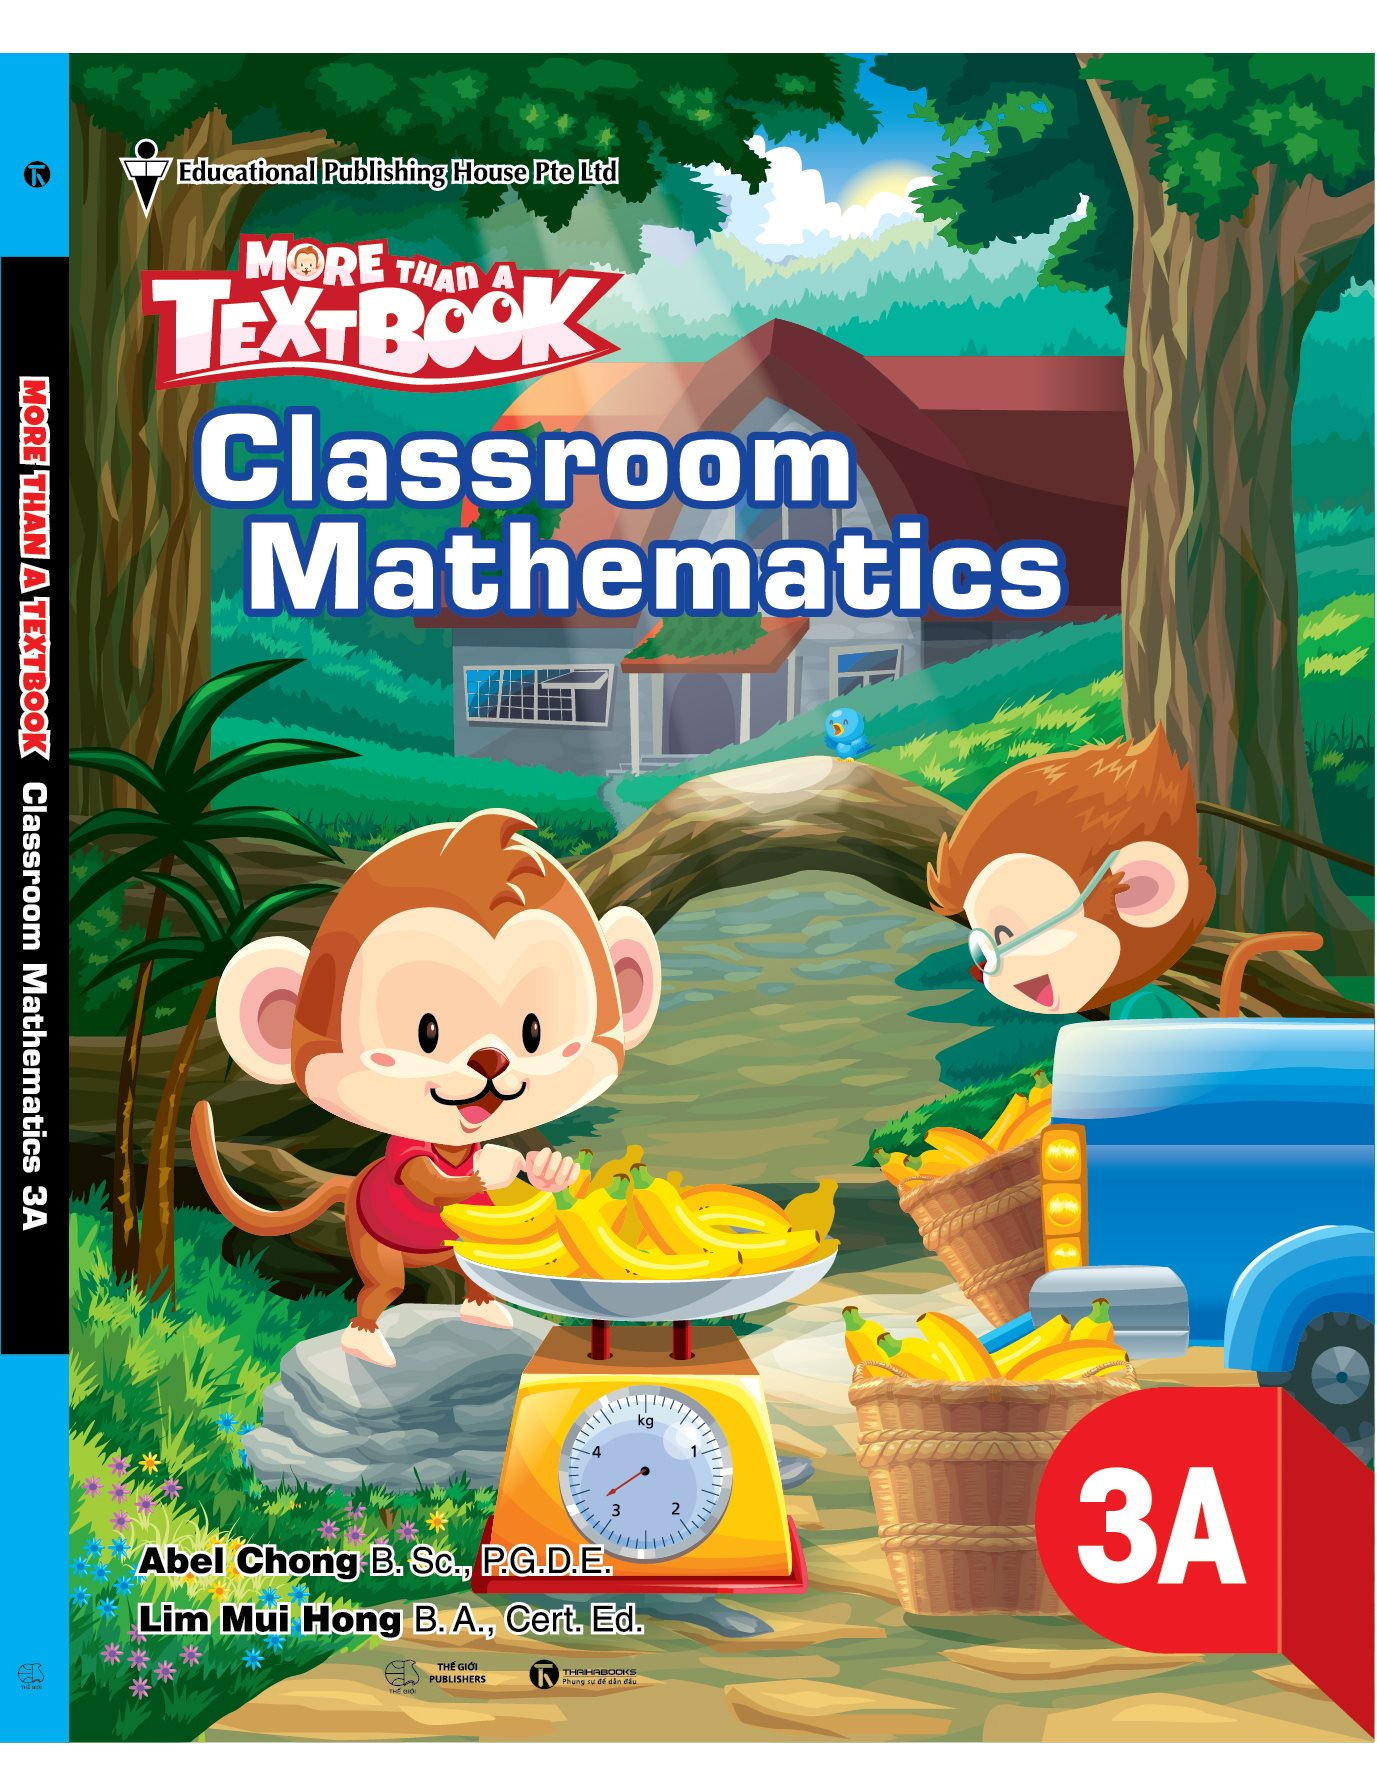 P3A More than a Textbook – Classroom Mathematics